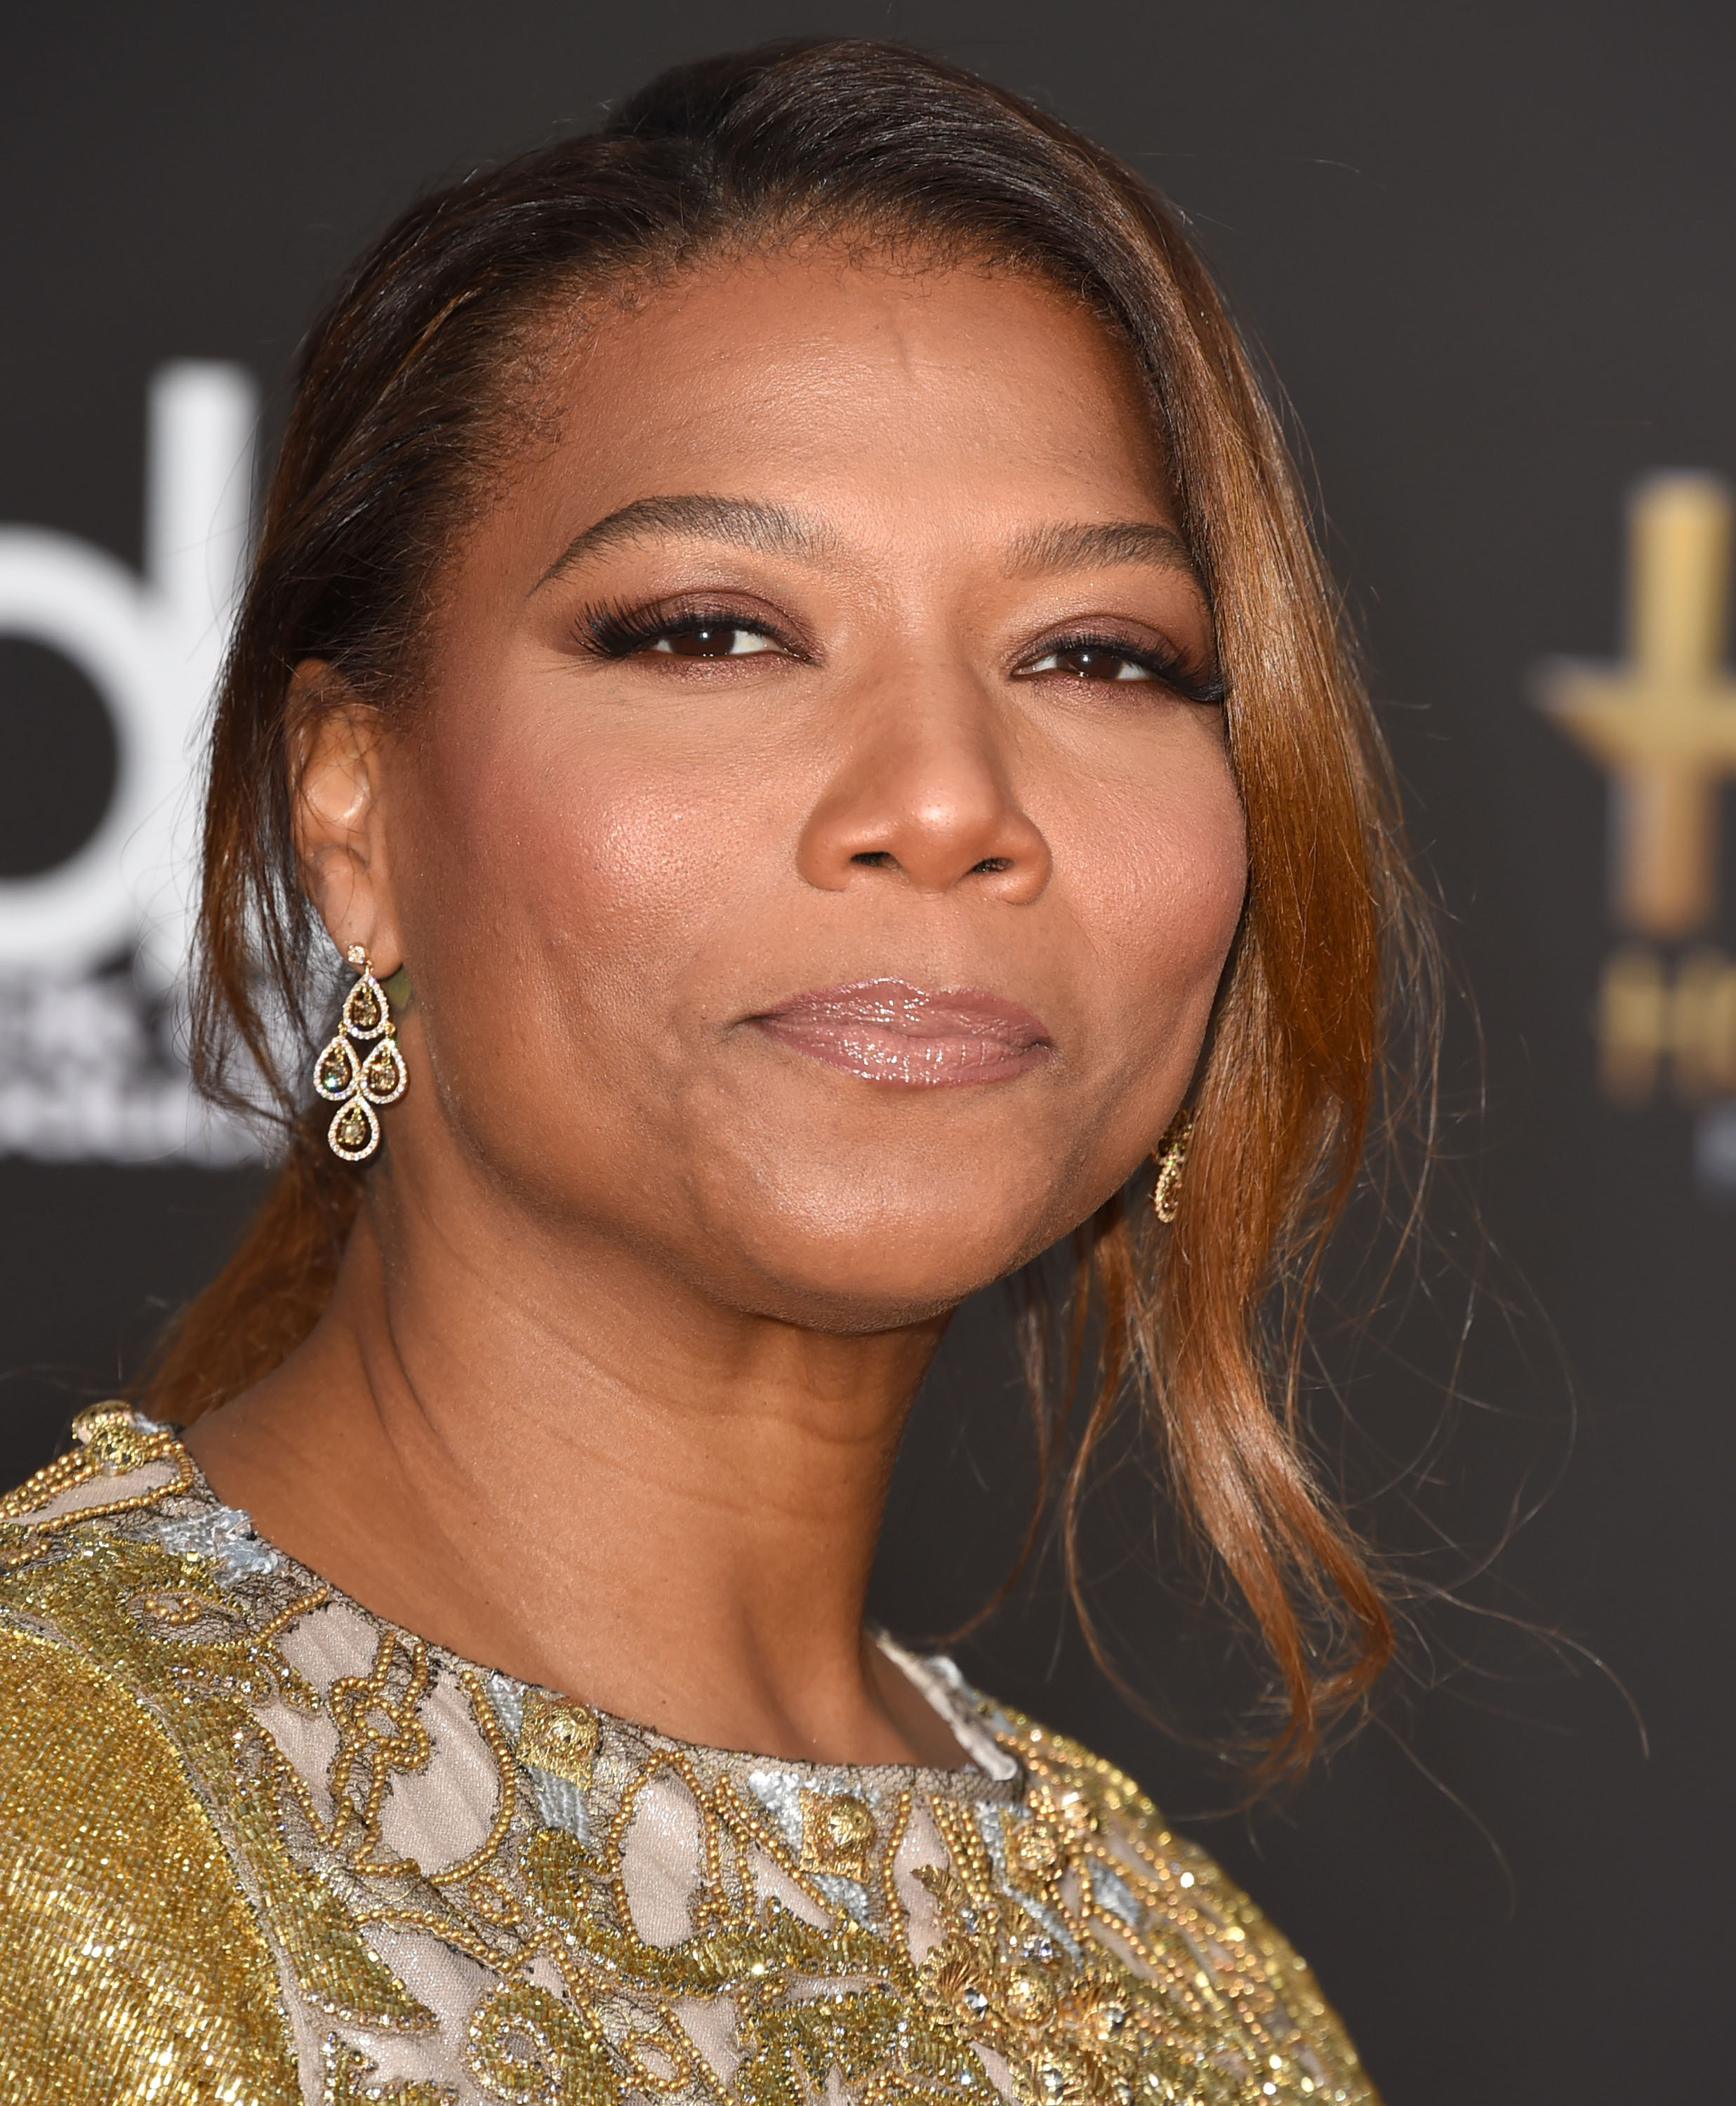 Queen Latifah in Hollywood, Nov. 14, 2014.